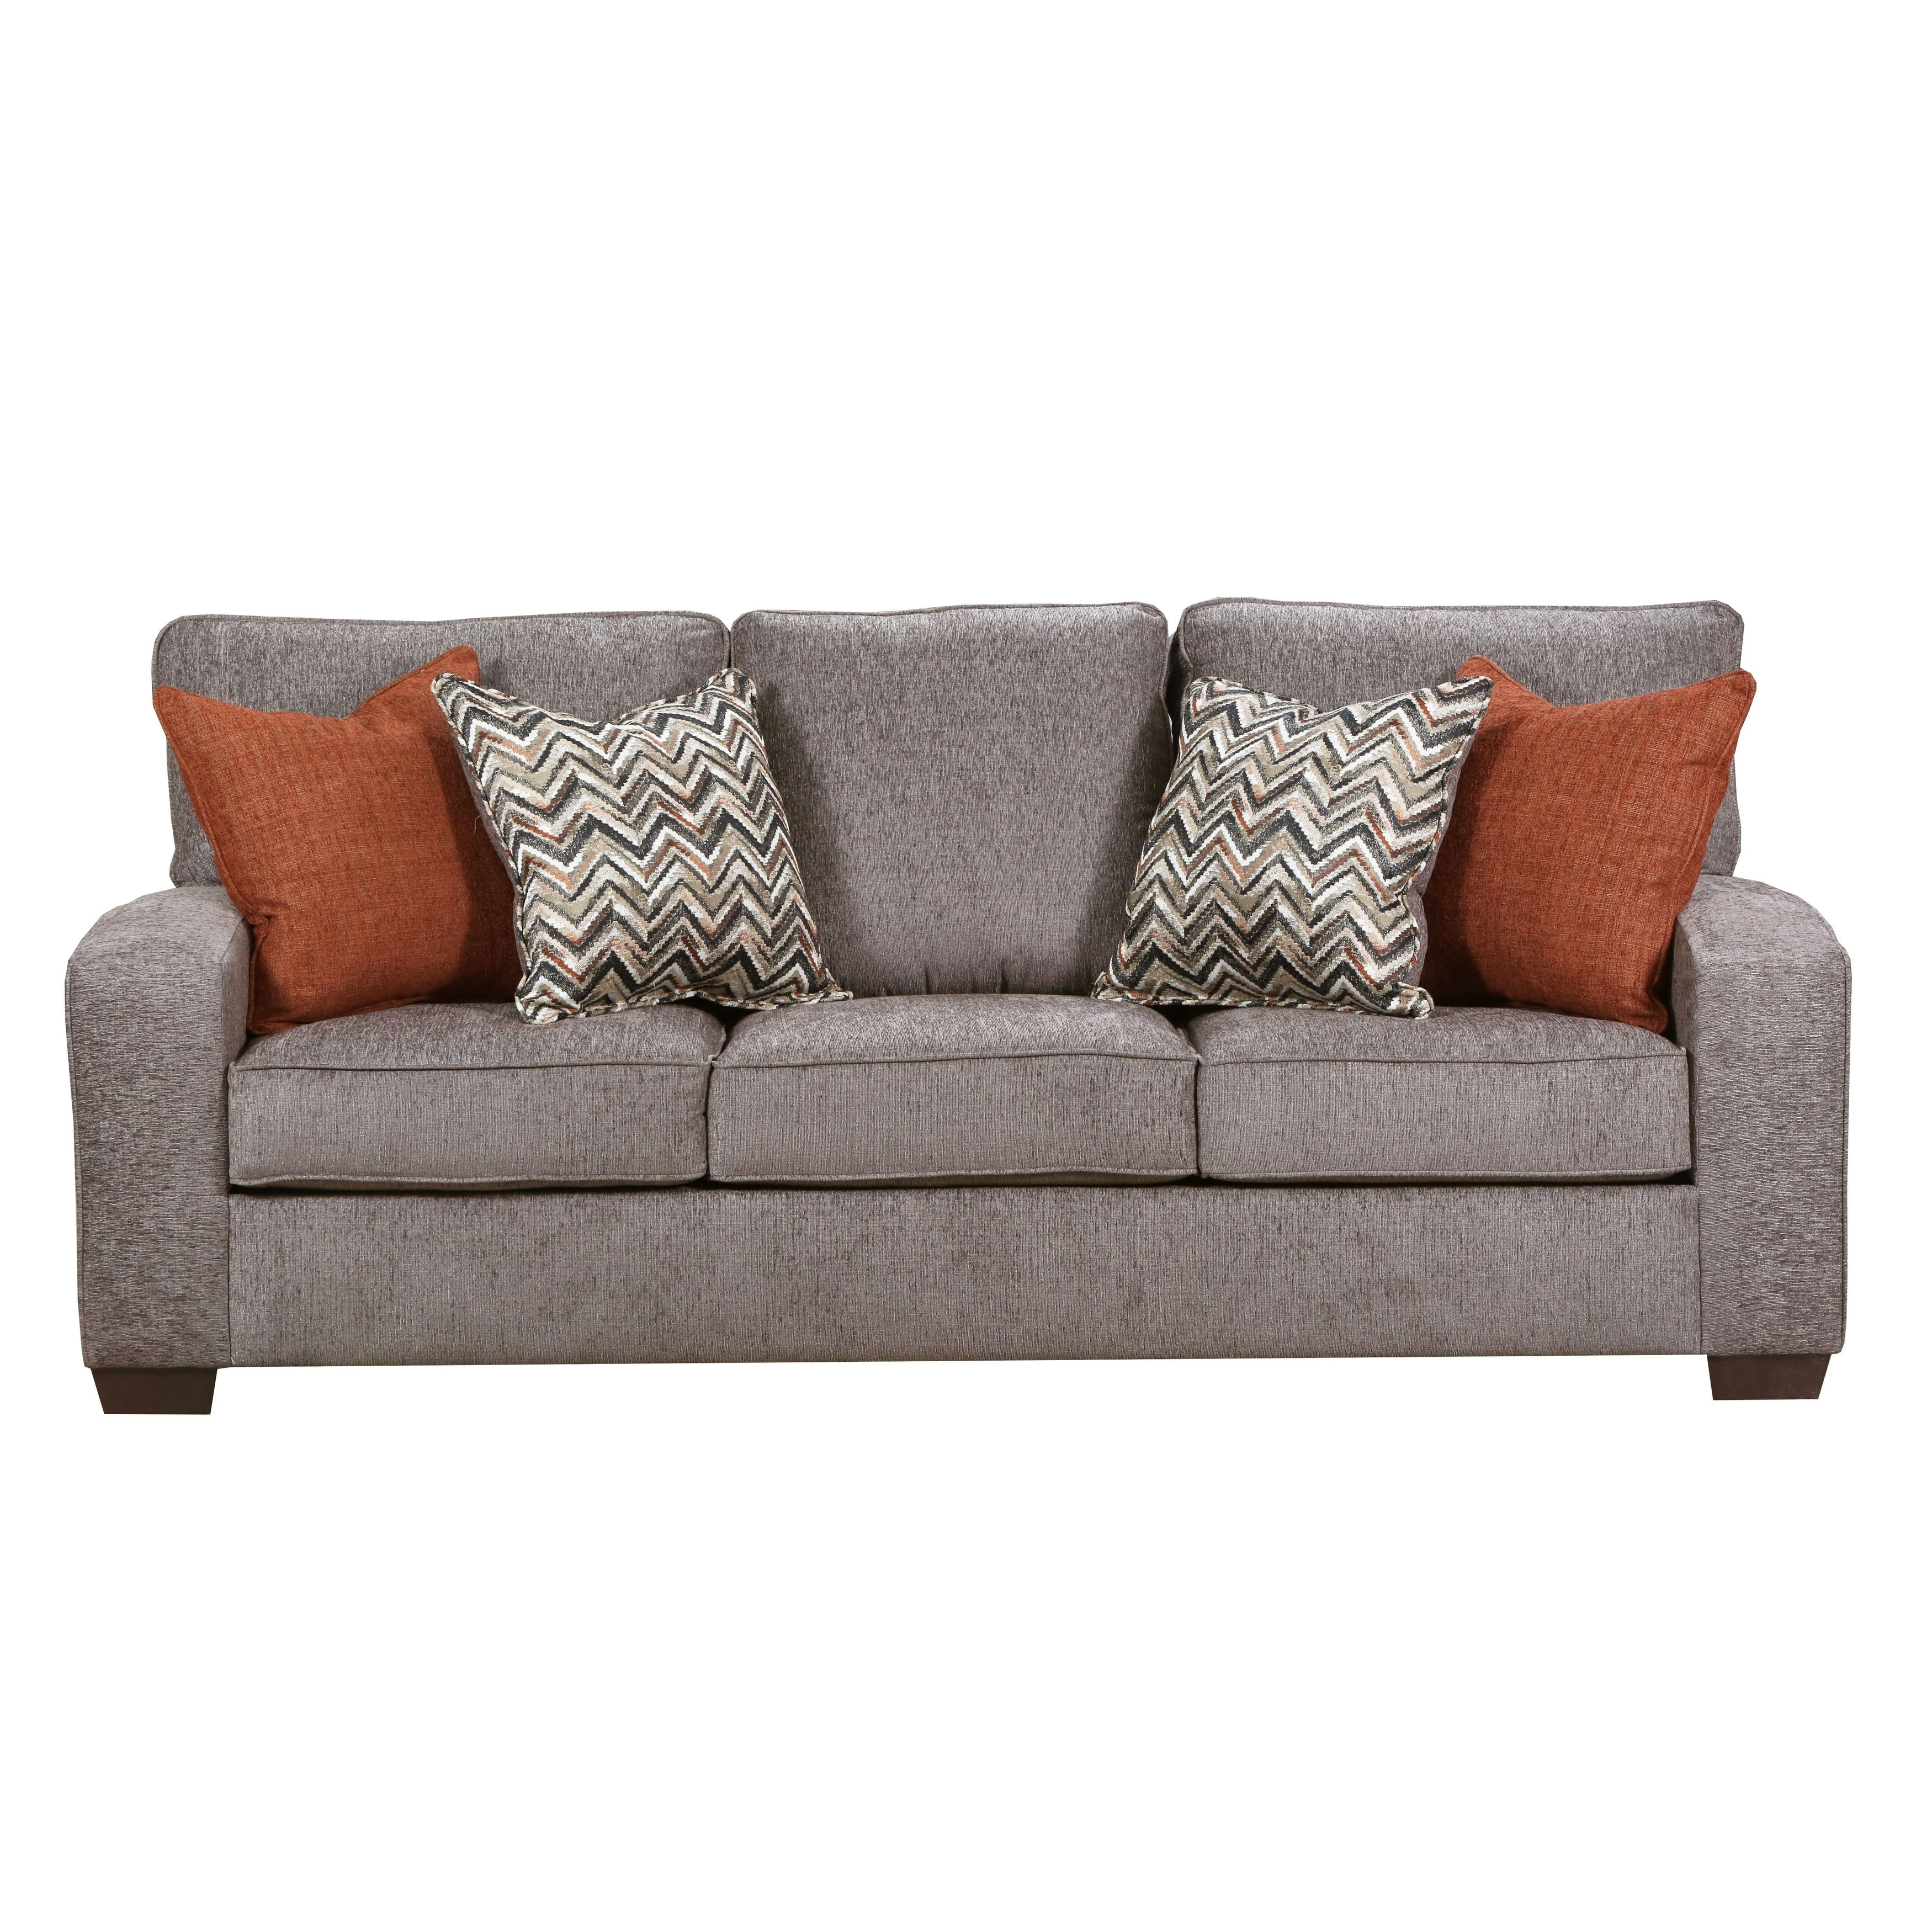 Couch Upholstery Fourways Simmons Upholstery Endurance Shadow Sofa